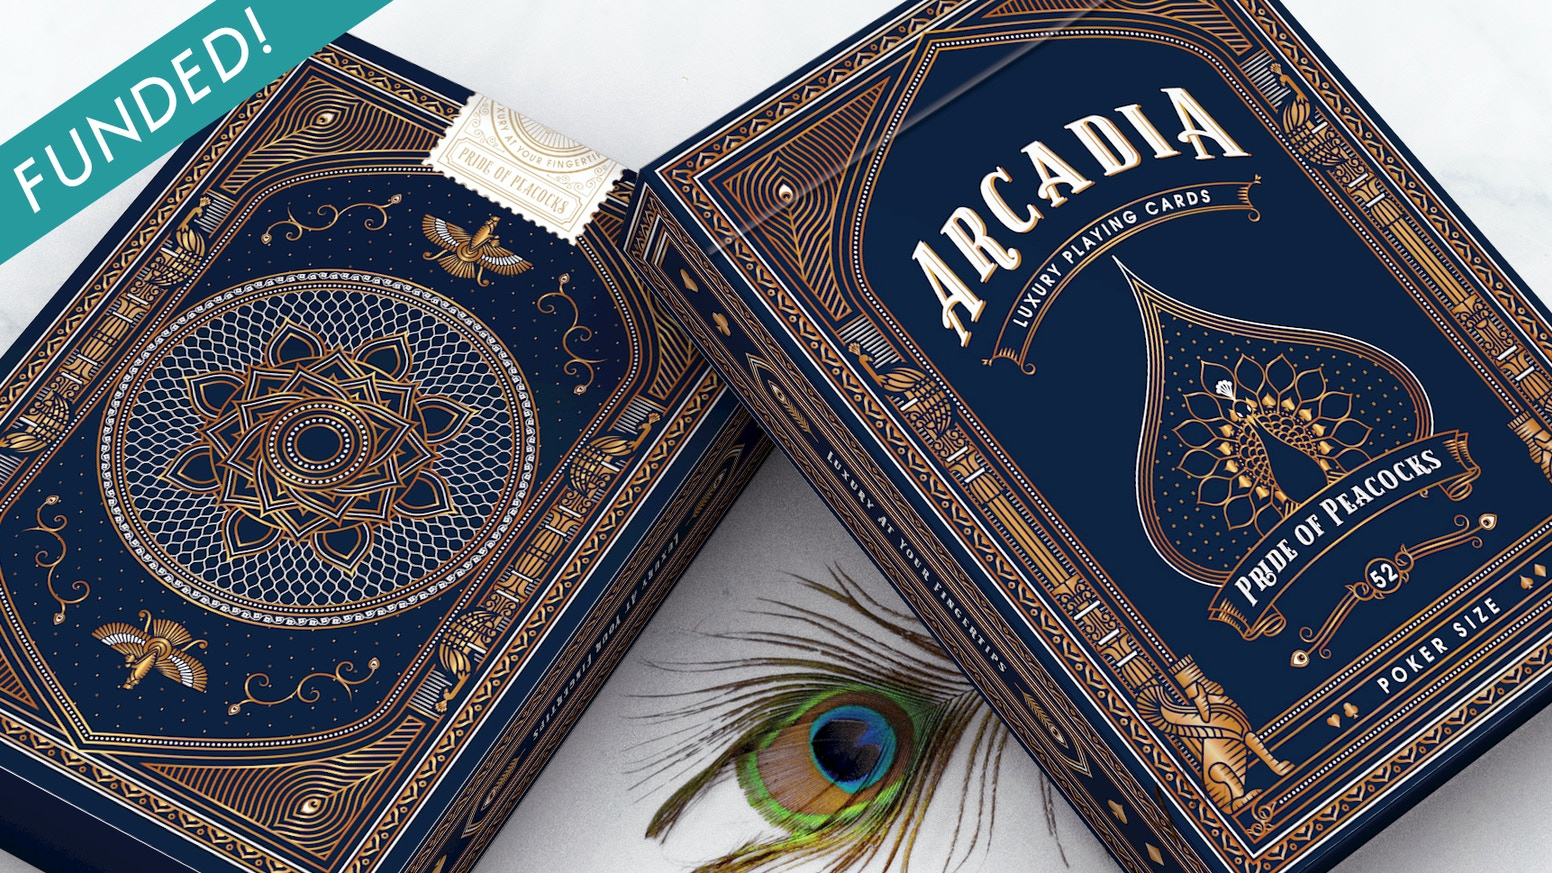 A luxurious deck of playing cards inspired by the peacock's importance in the art and culture of Persian empires.